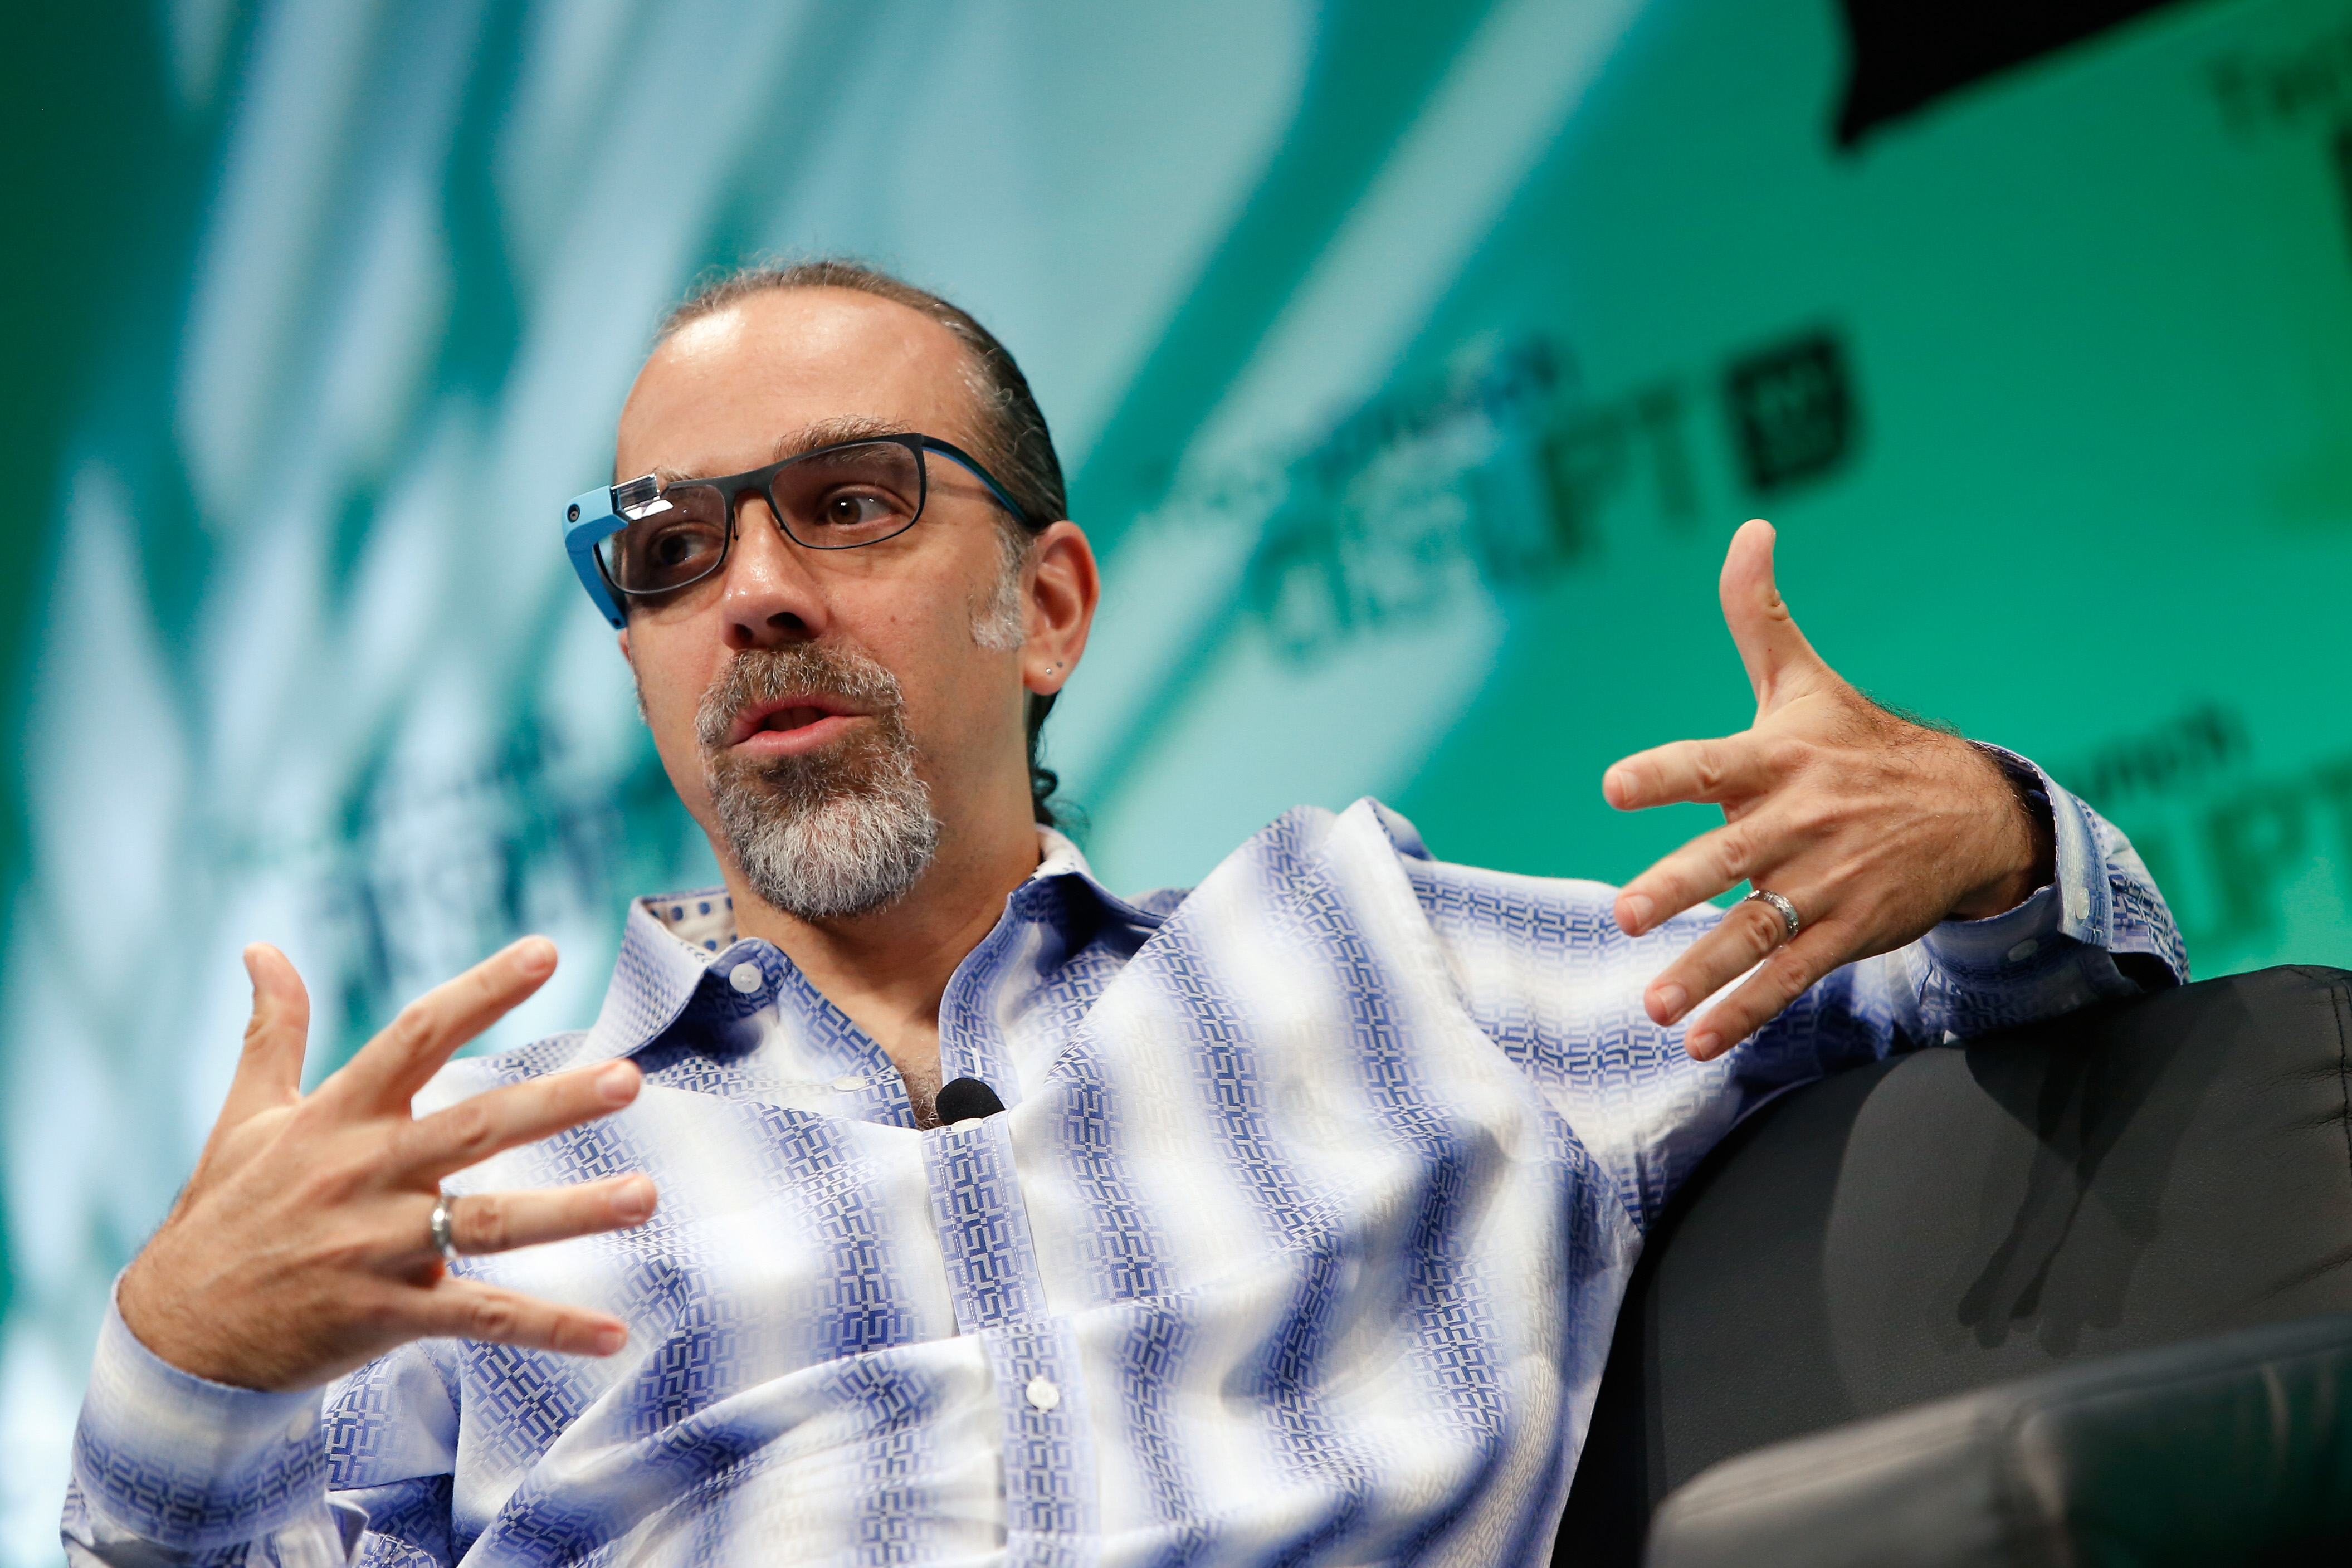 astro teller google Search the world's information, including webpages, images, videos and more google has many special features to help you find exactly what you're looking for.